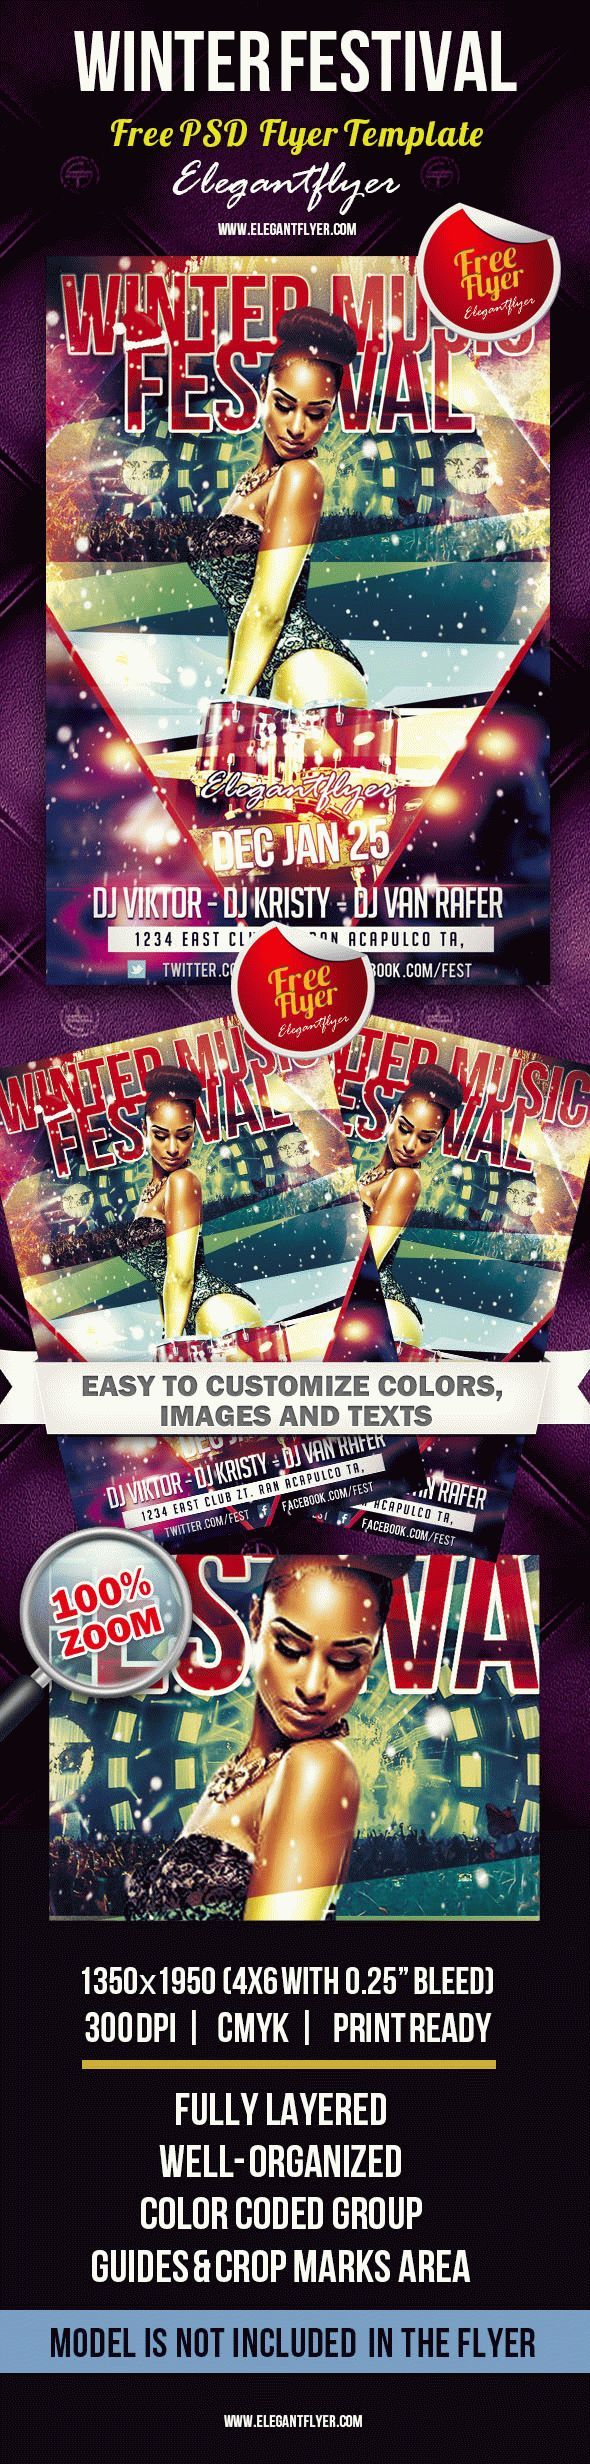 Winter Music Festival – Free Club flyer PSD Template